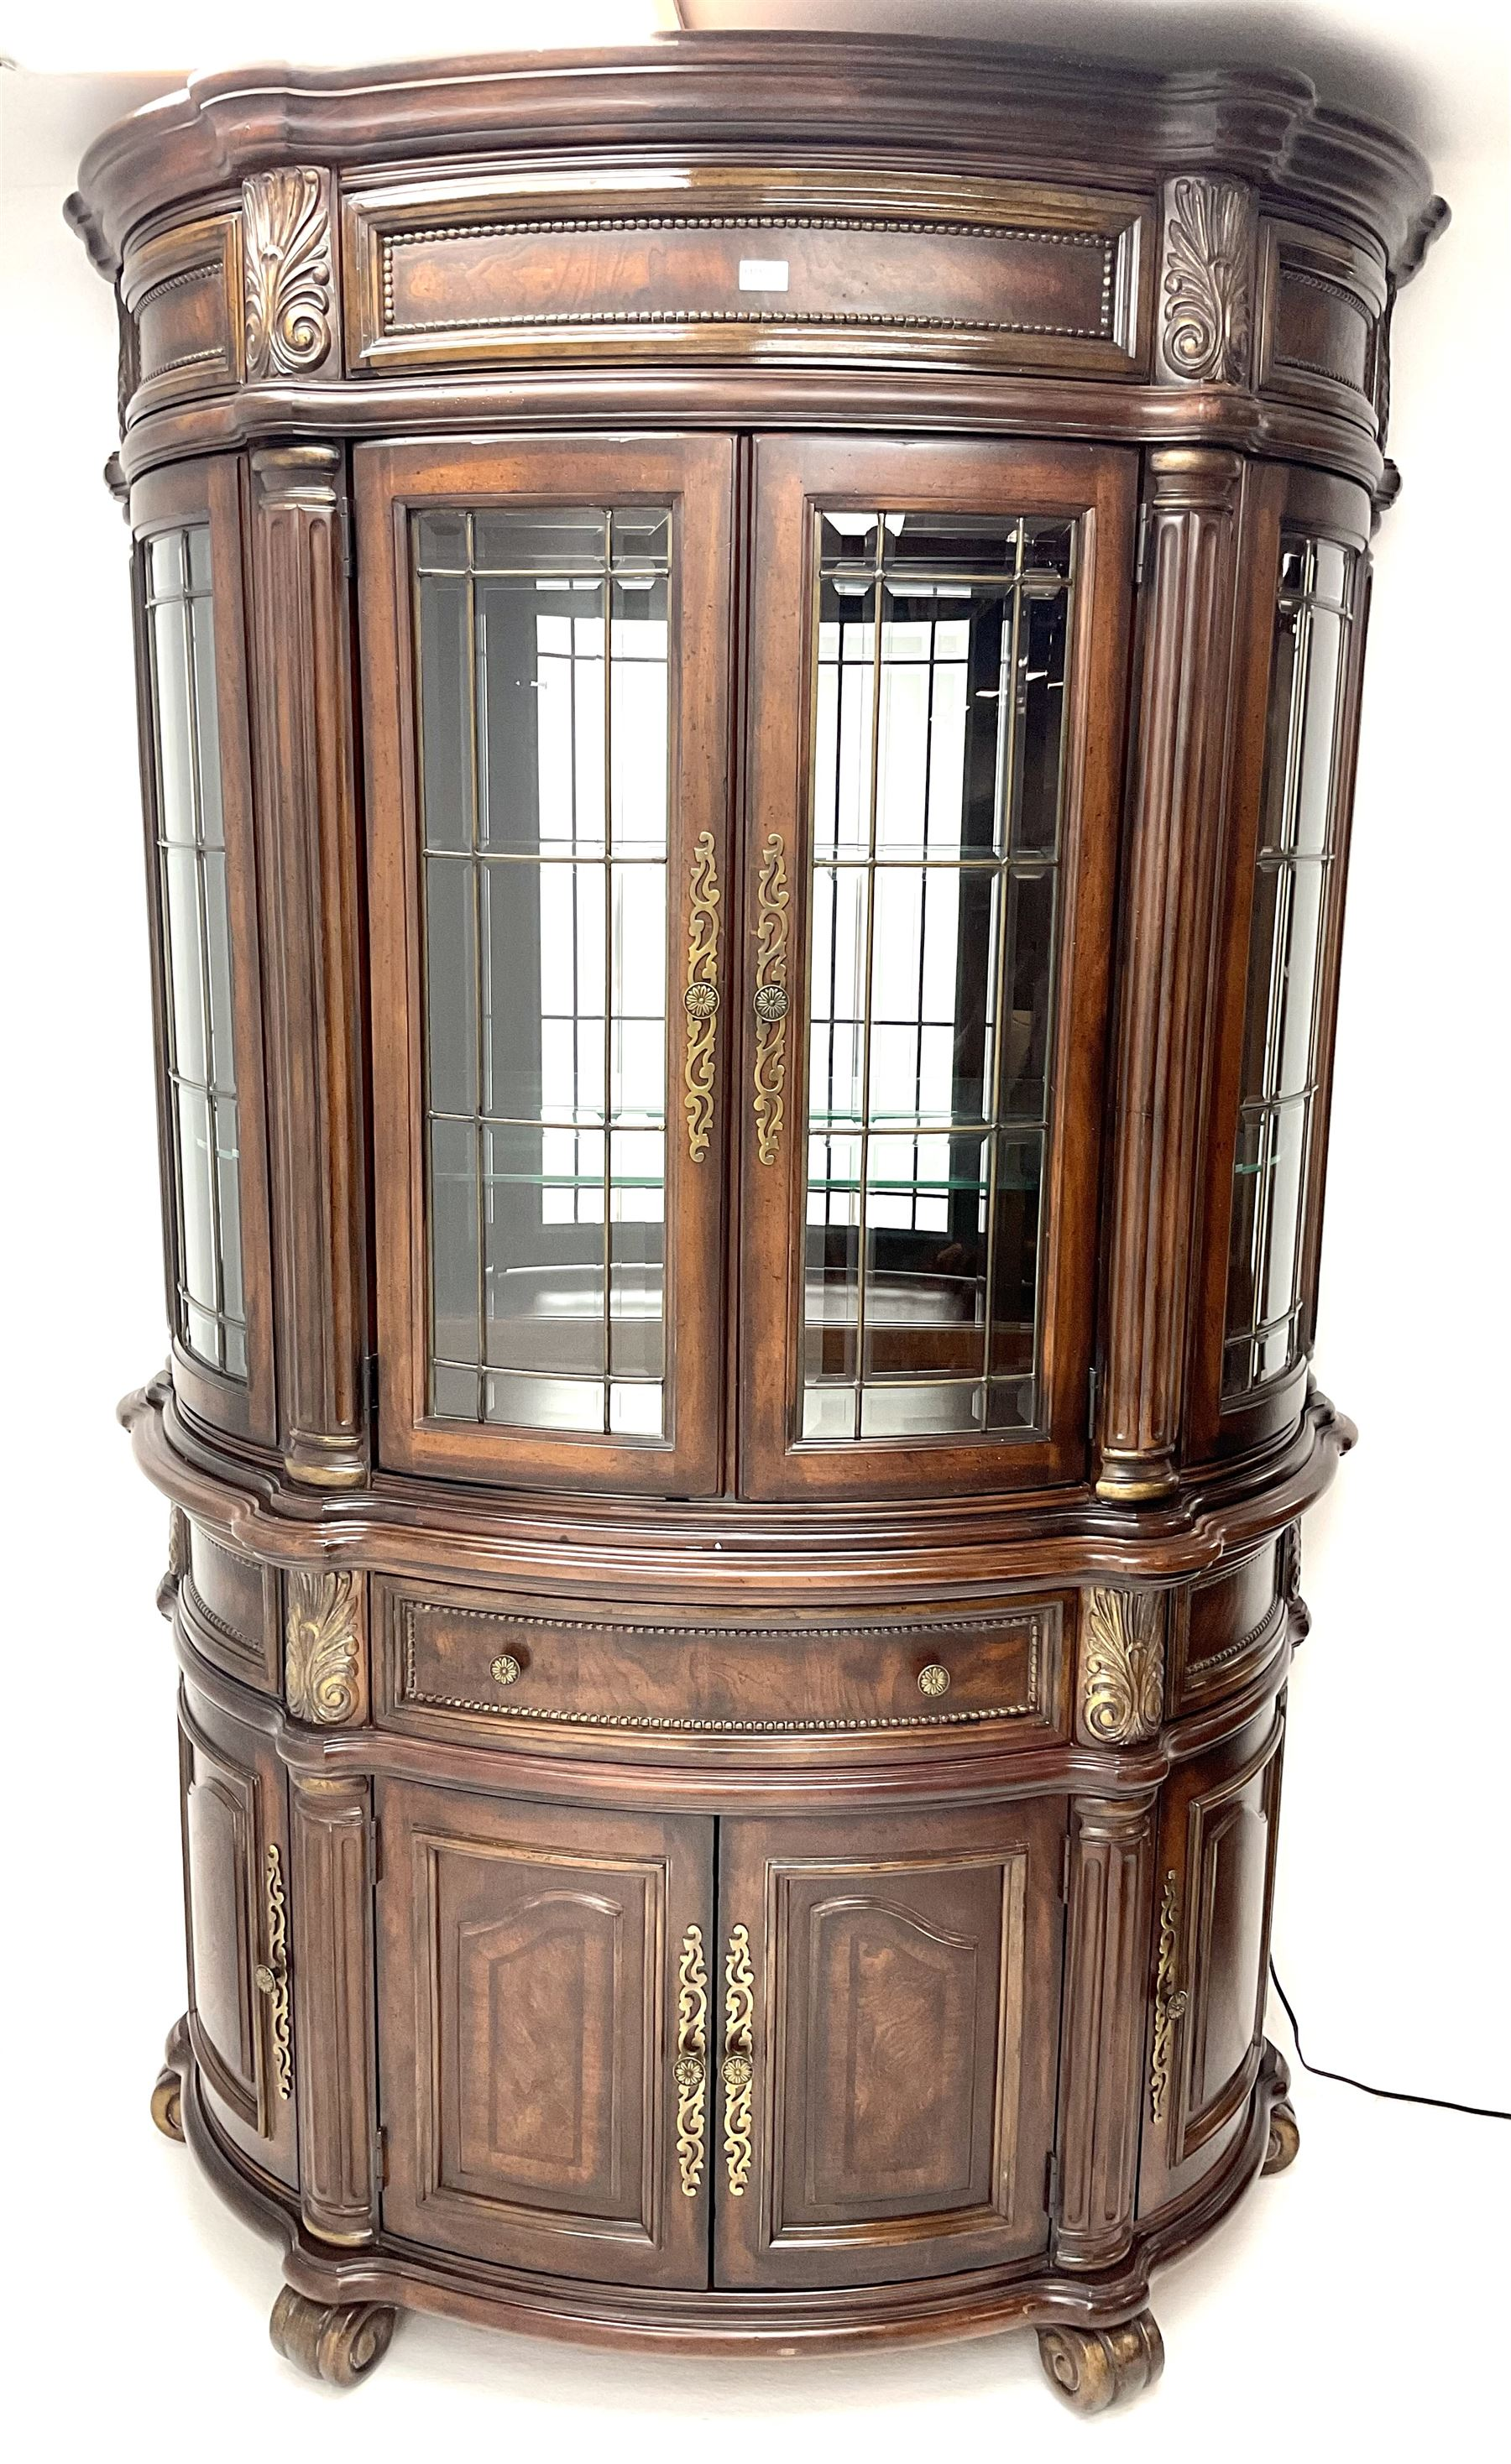 Kevin Charles American walnut demi lune display cabinet with illuminated interior